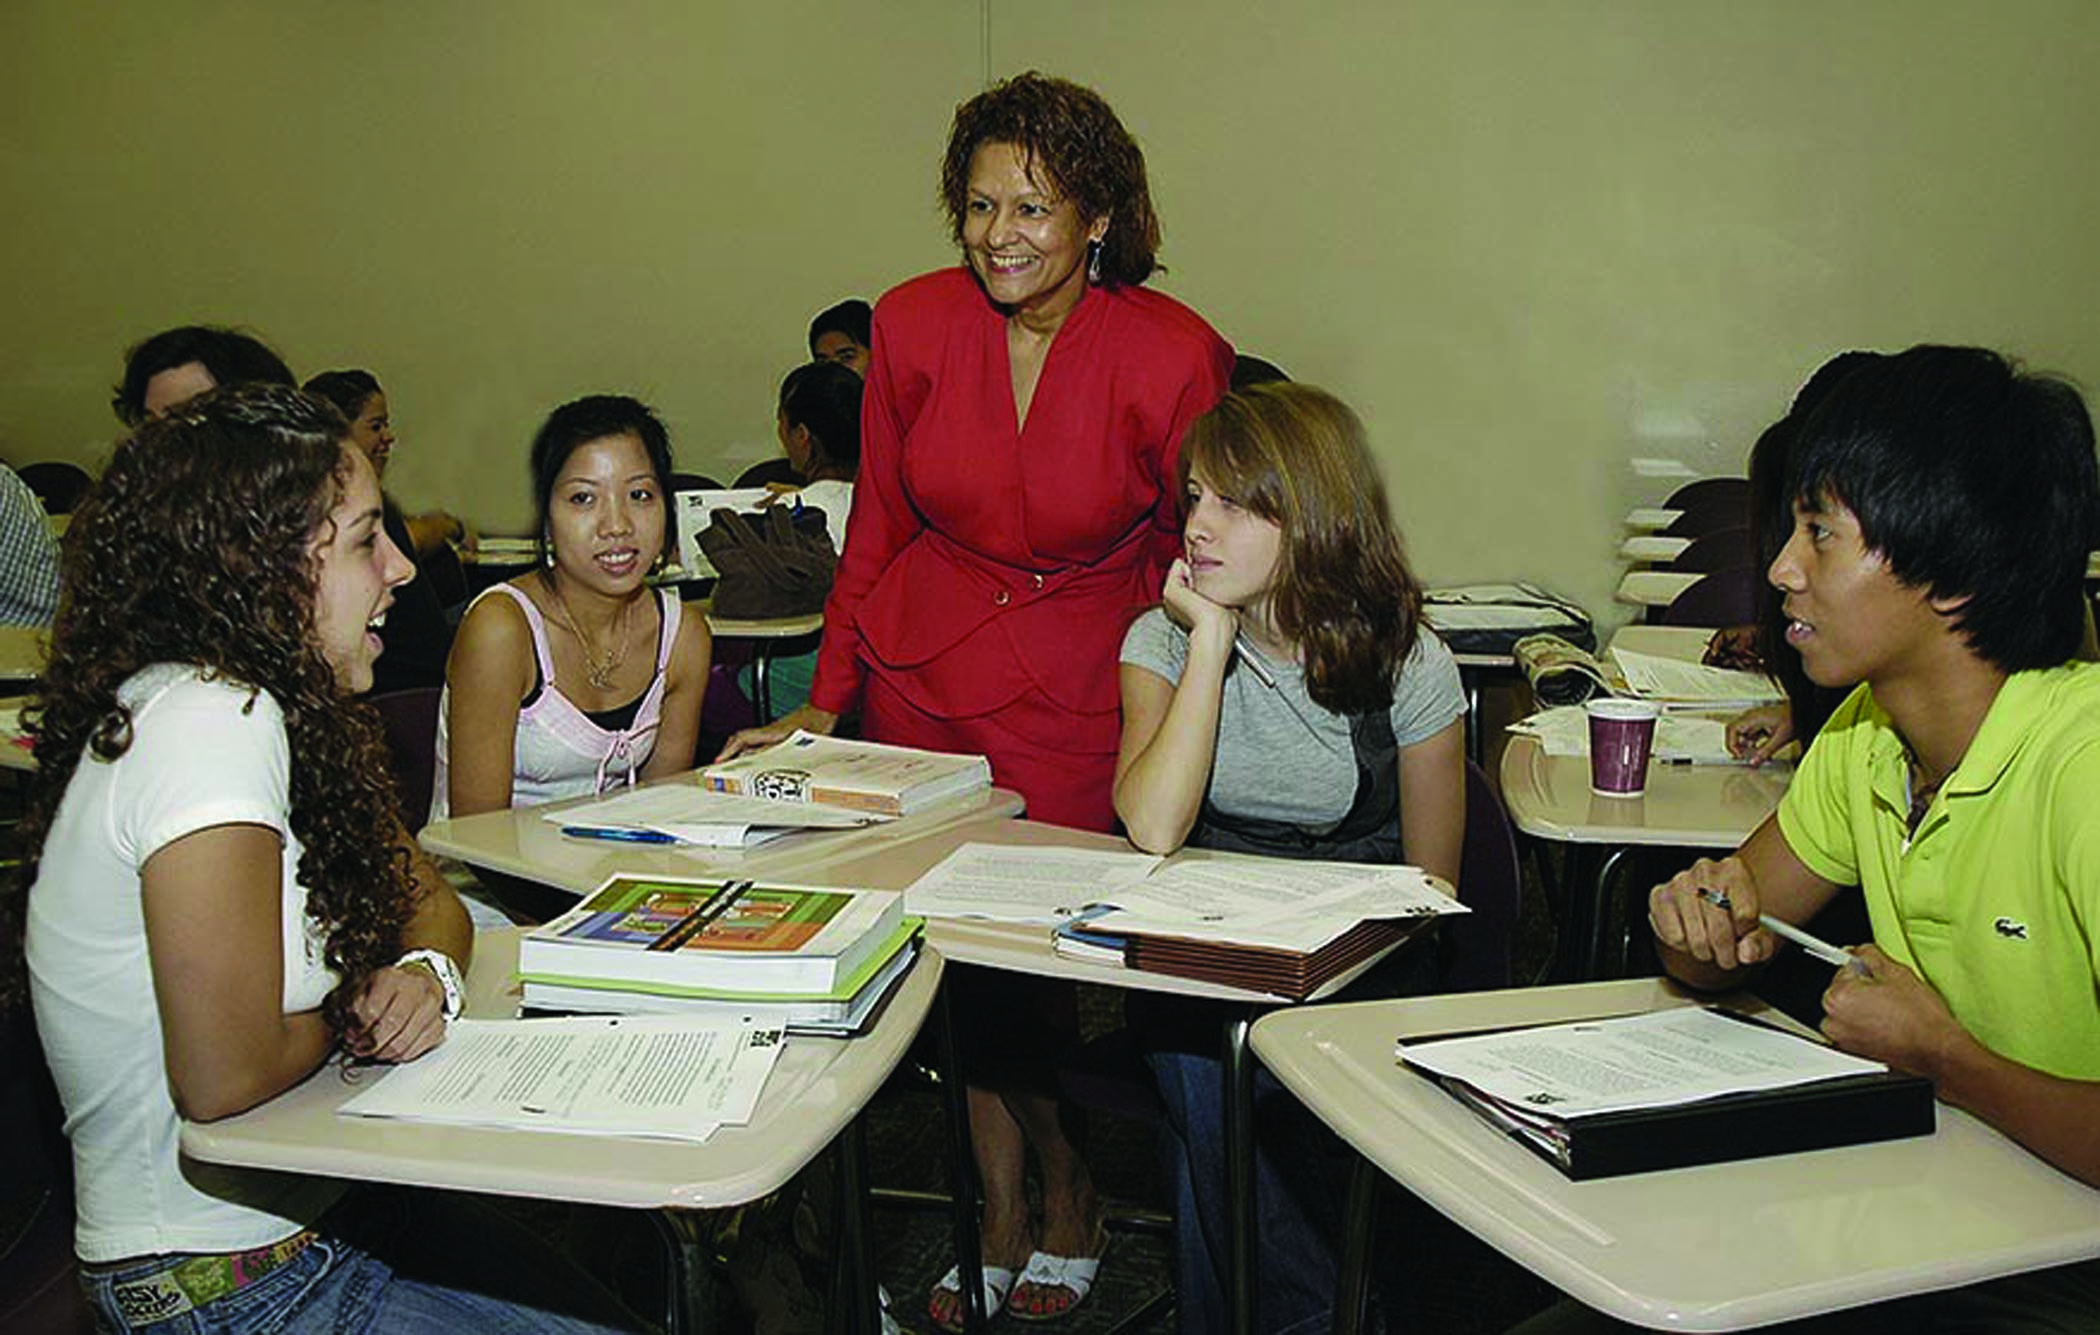 the community college instructors practical design Bucks county community college offers certificate and associate degree programs healthcare at bucks taught by highly-skilled and experienced instructors.